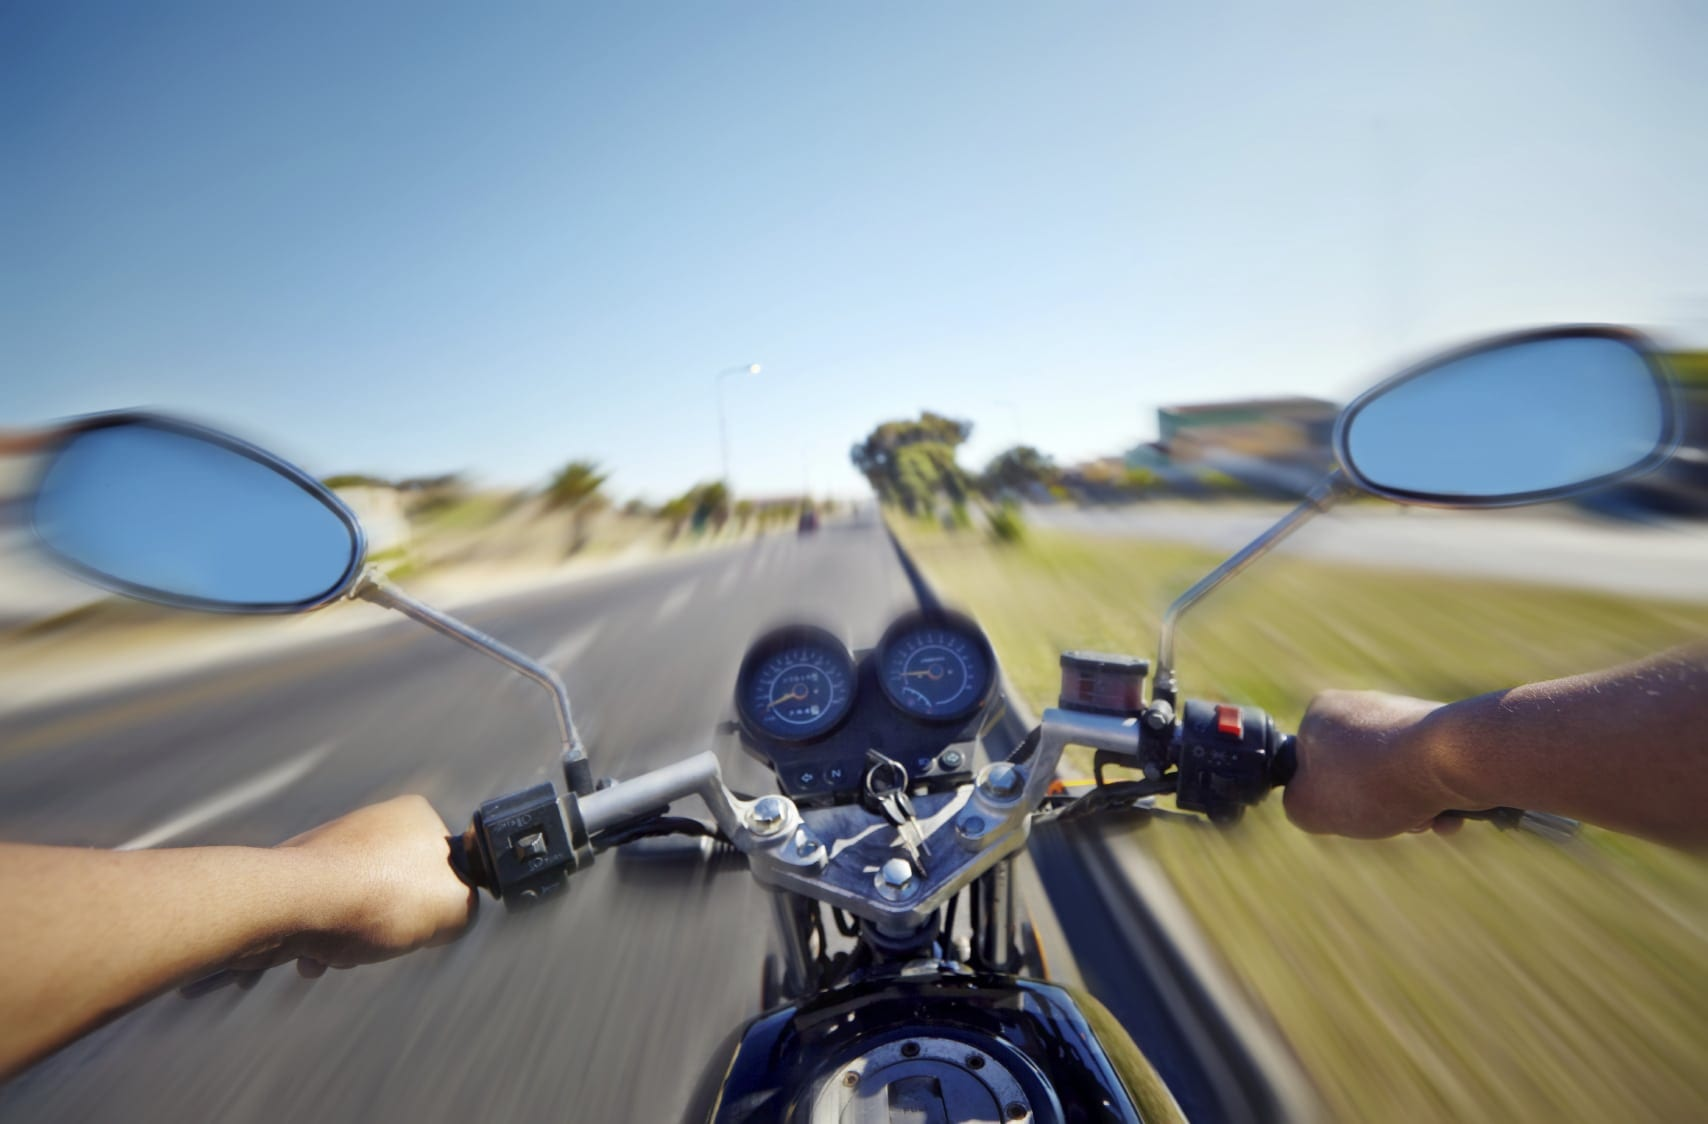 Man Riding A Motorcycle On The Highway Stock Photo